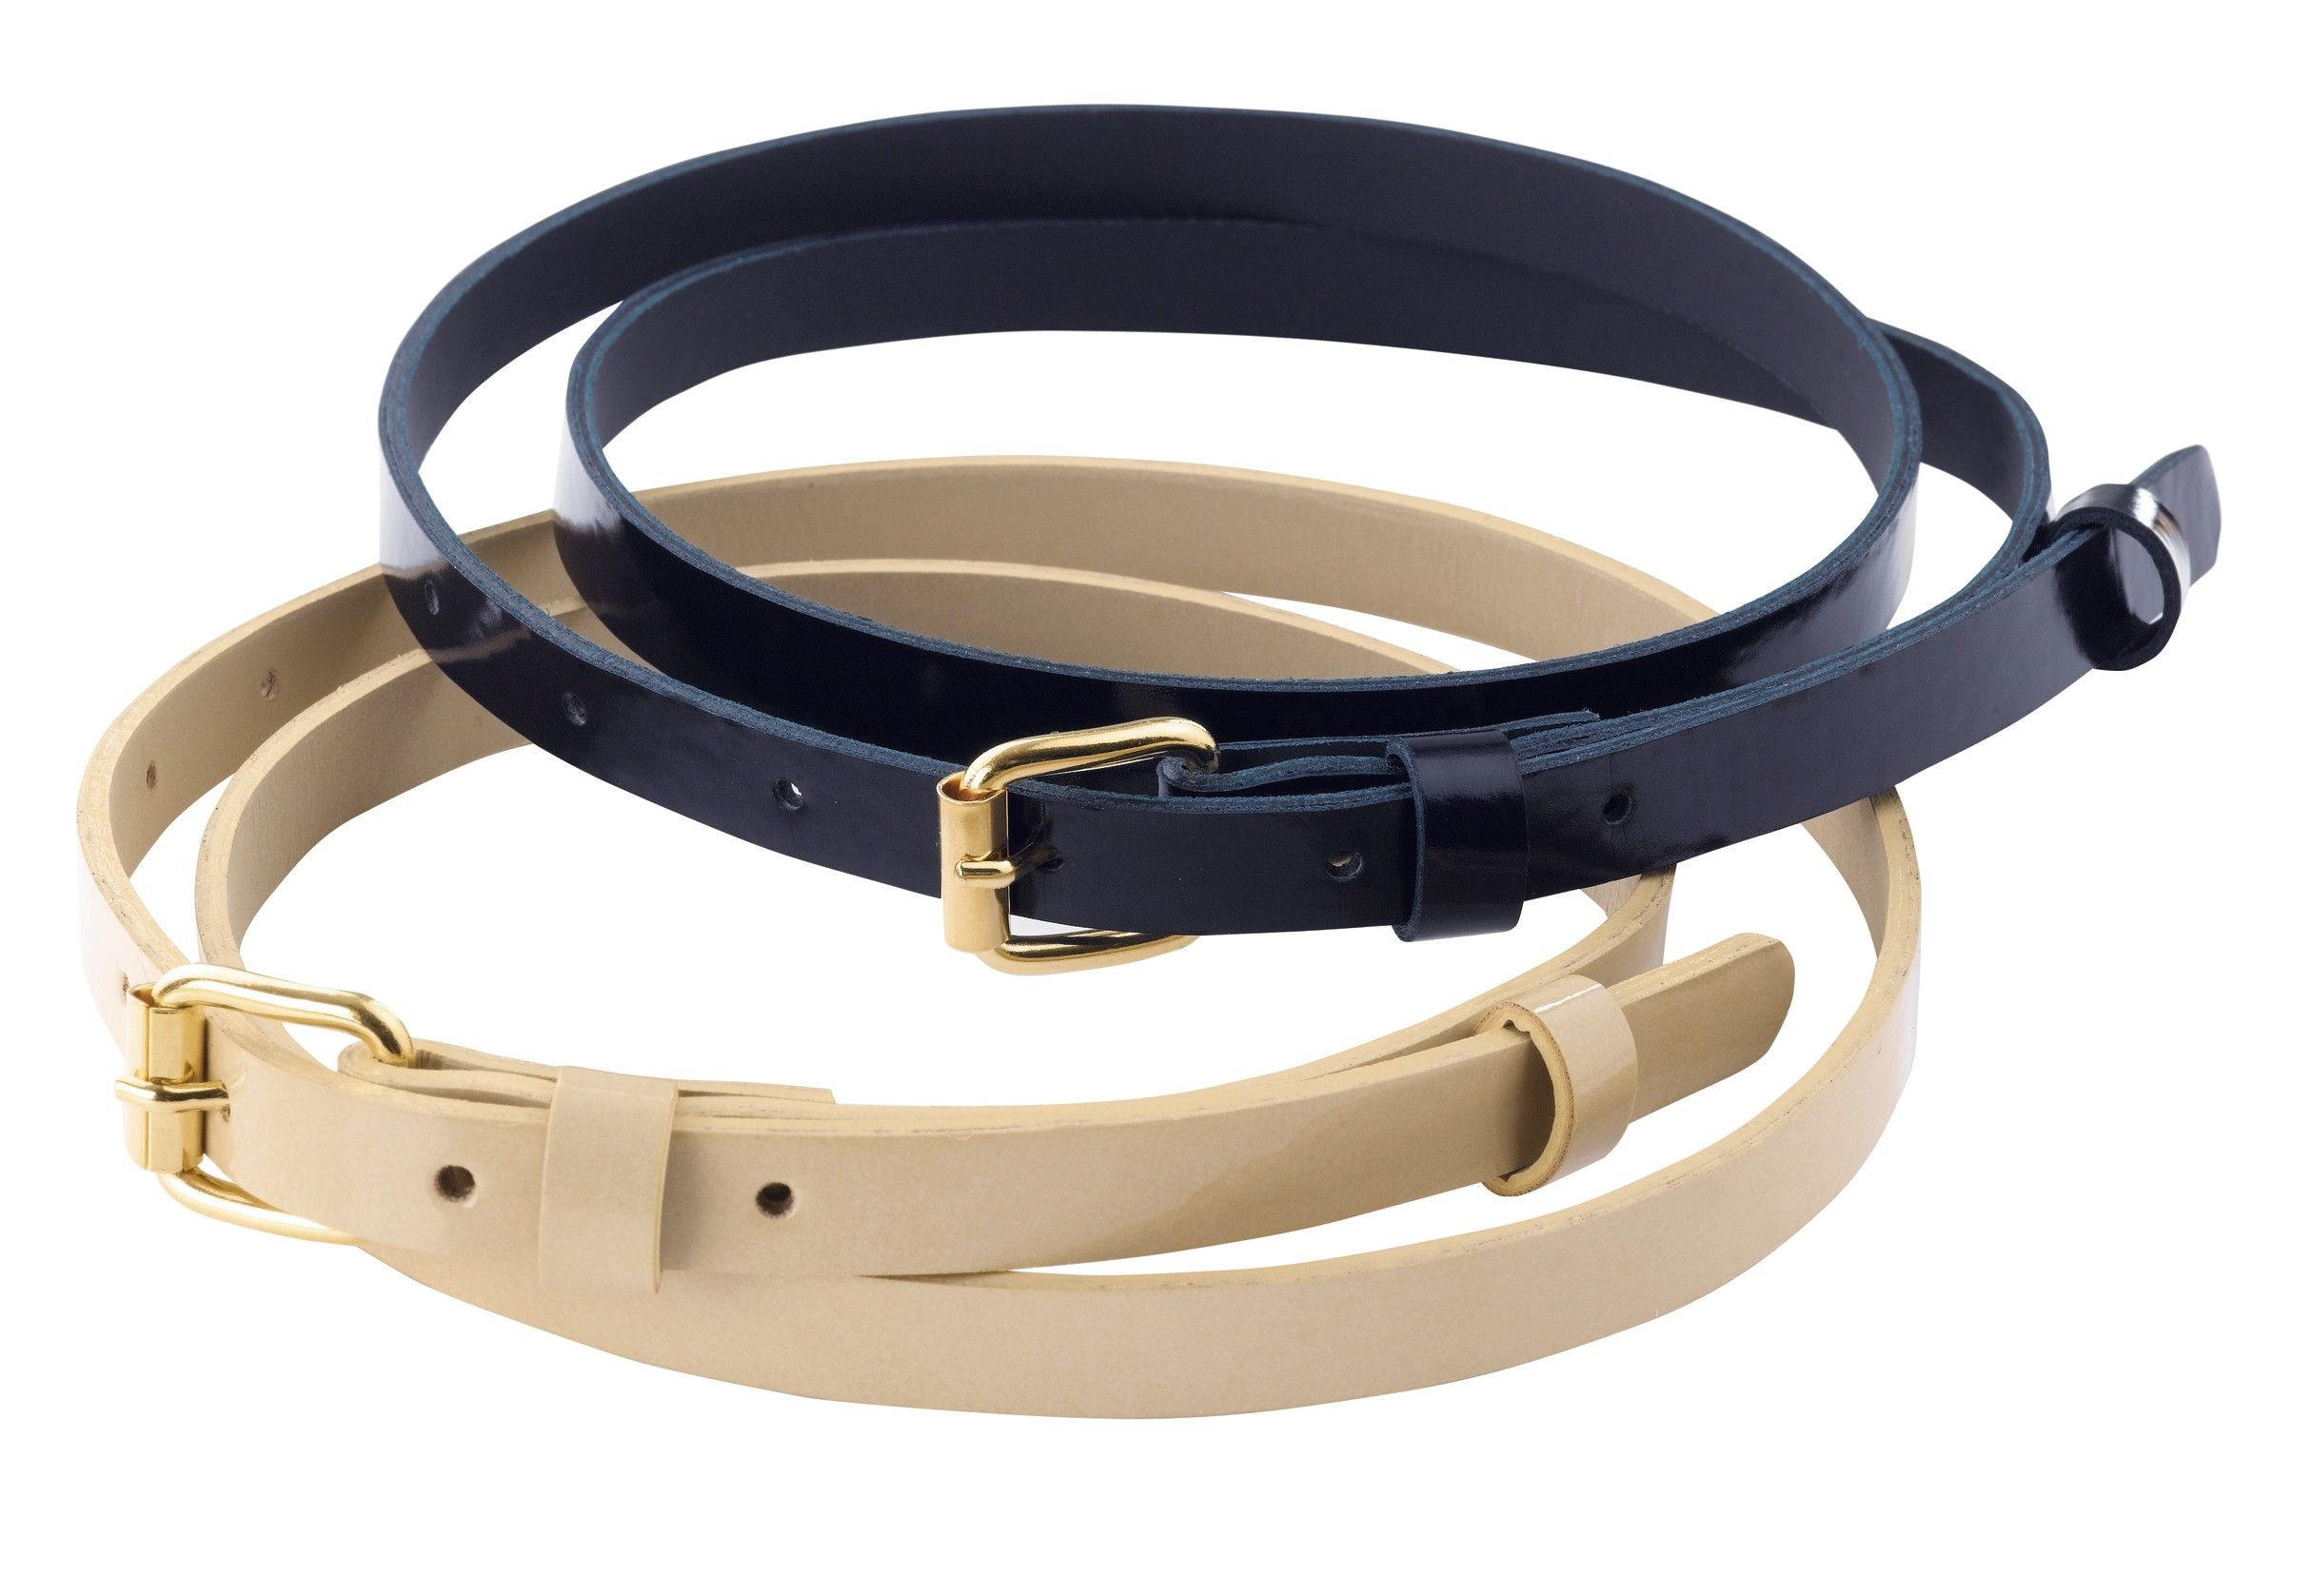 Simple ladies' fashion belt with gold buckle which ...